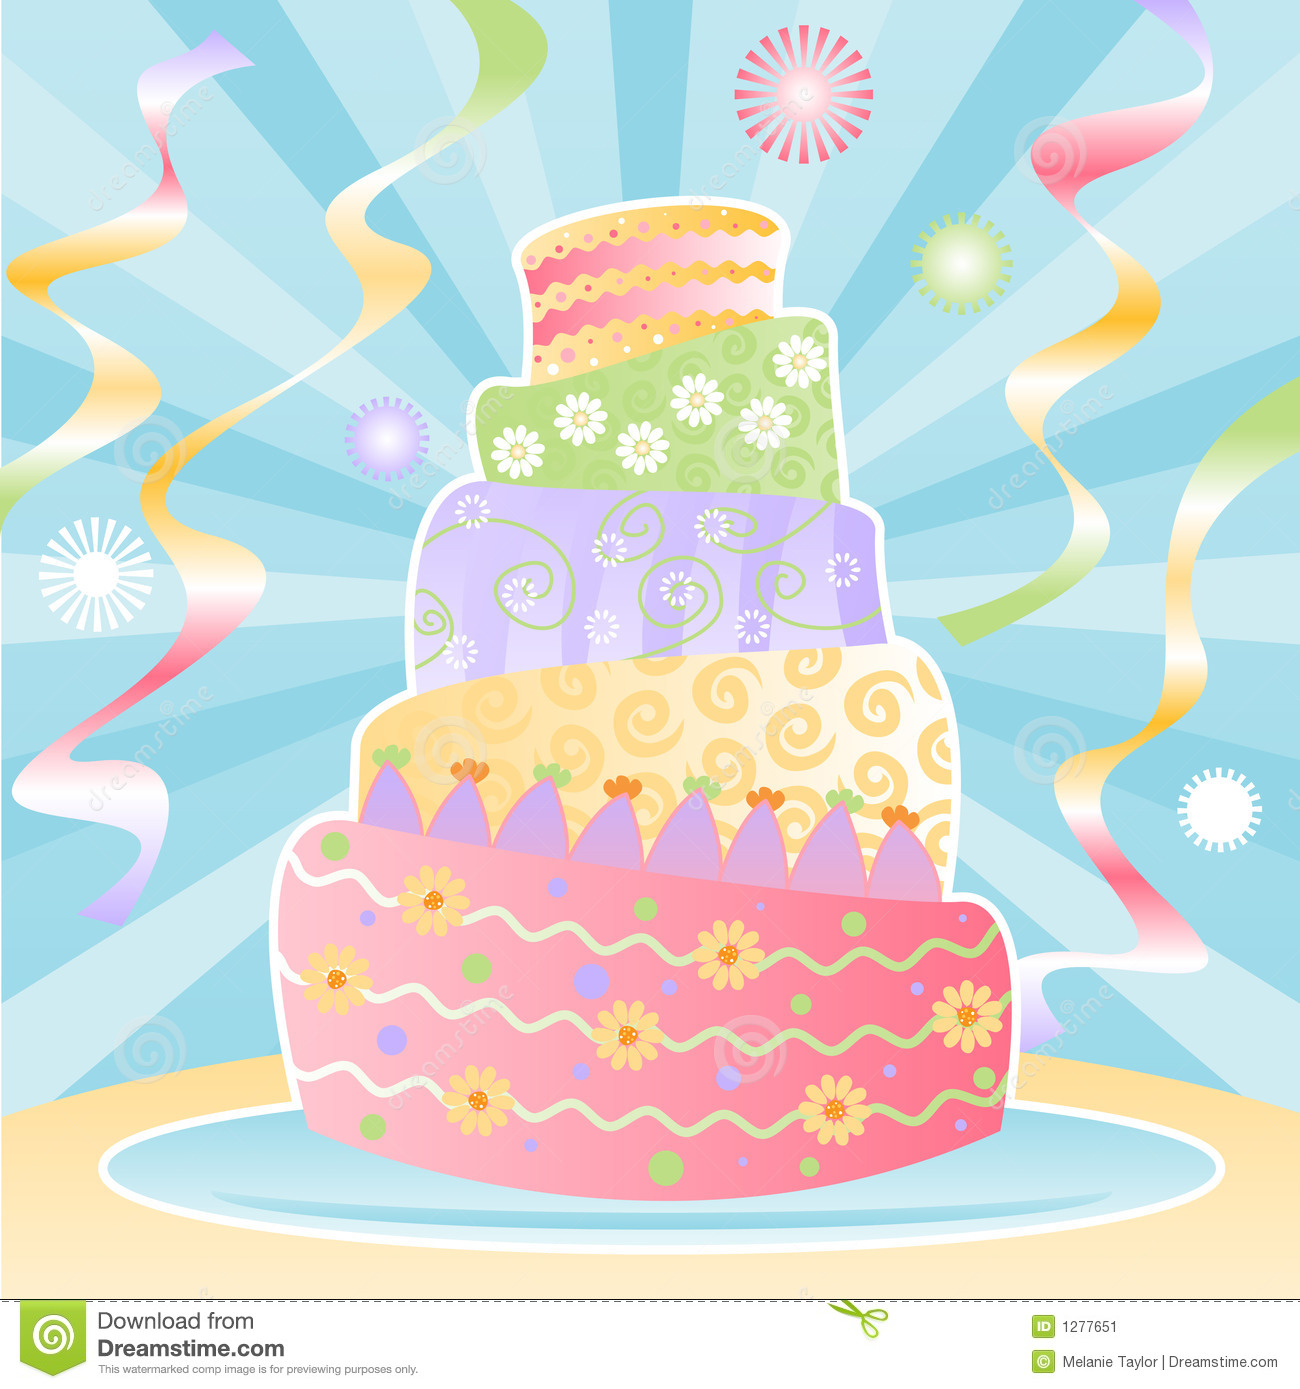 Magnificent Ultimate Birthday Cake Stock Vector Illustration Of Tier 1277651 Personalised Birthday Cards Paralily Jamesorg